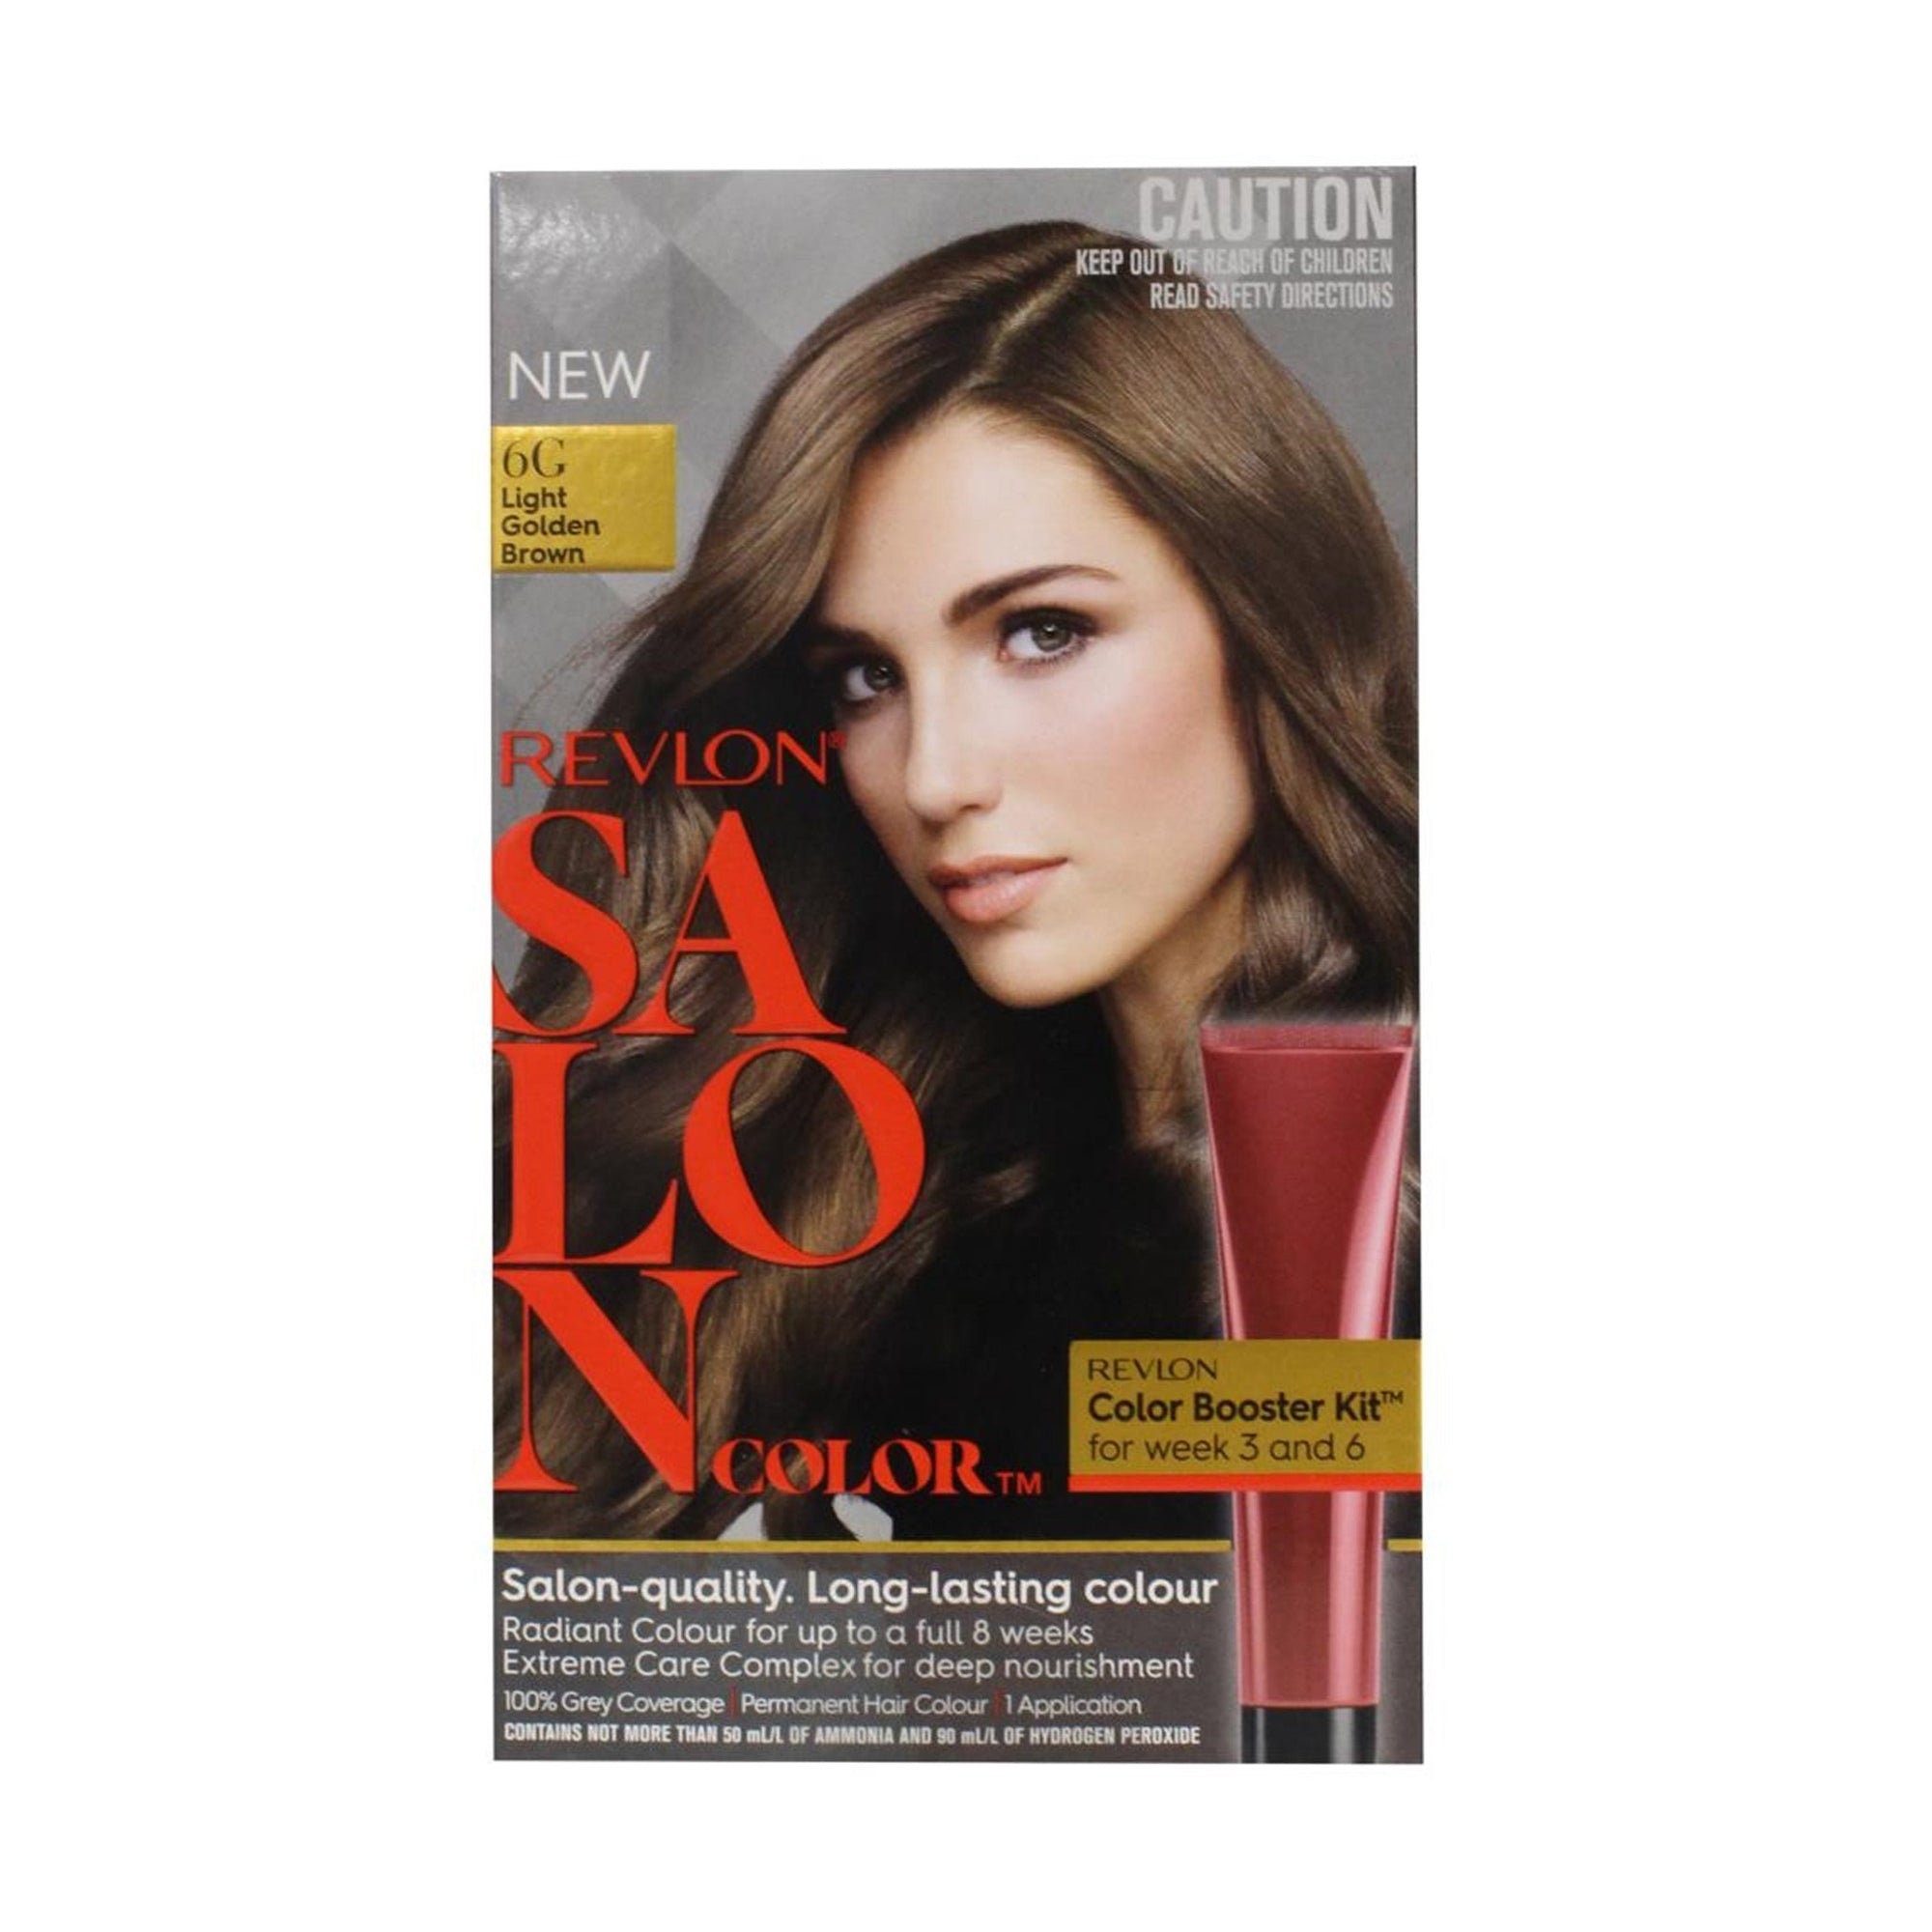 Revlon Salon Hair Color #6G Light Golden Brown